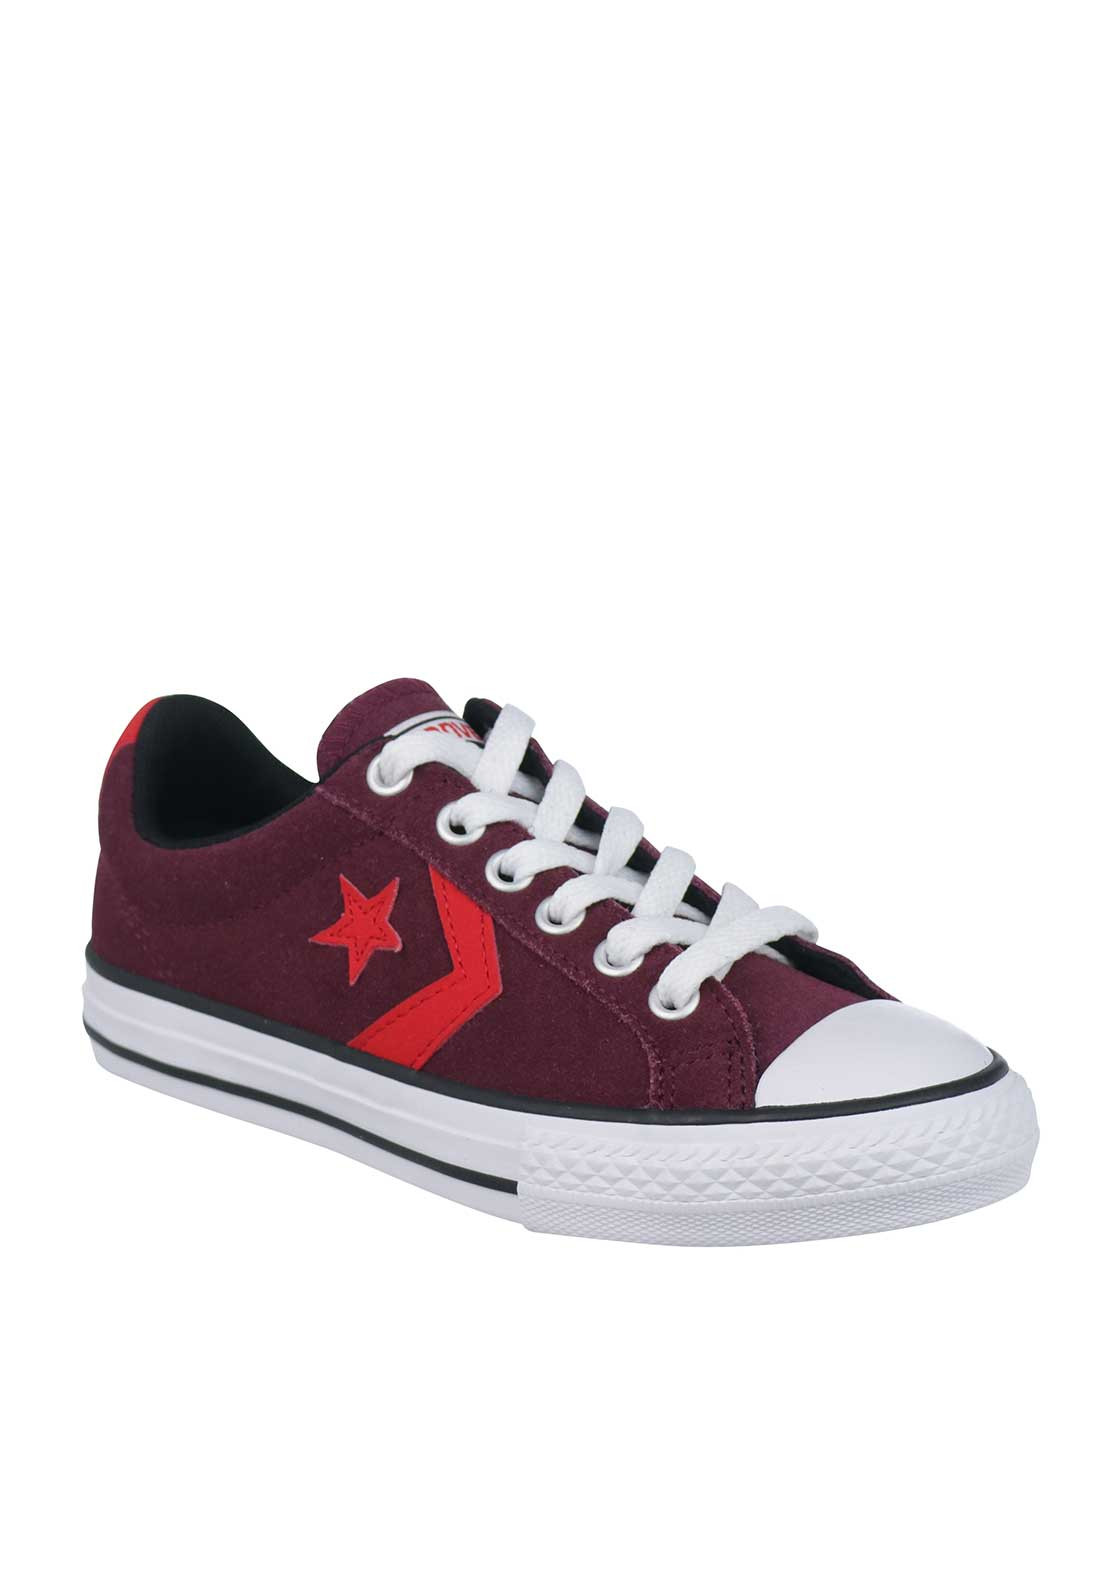 Converse Kids Cons Star Player Suede Trainers, Wine